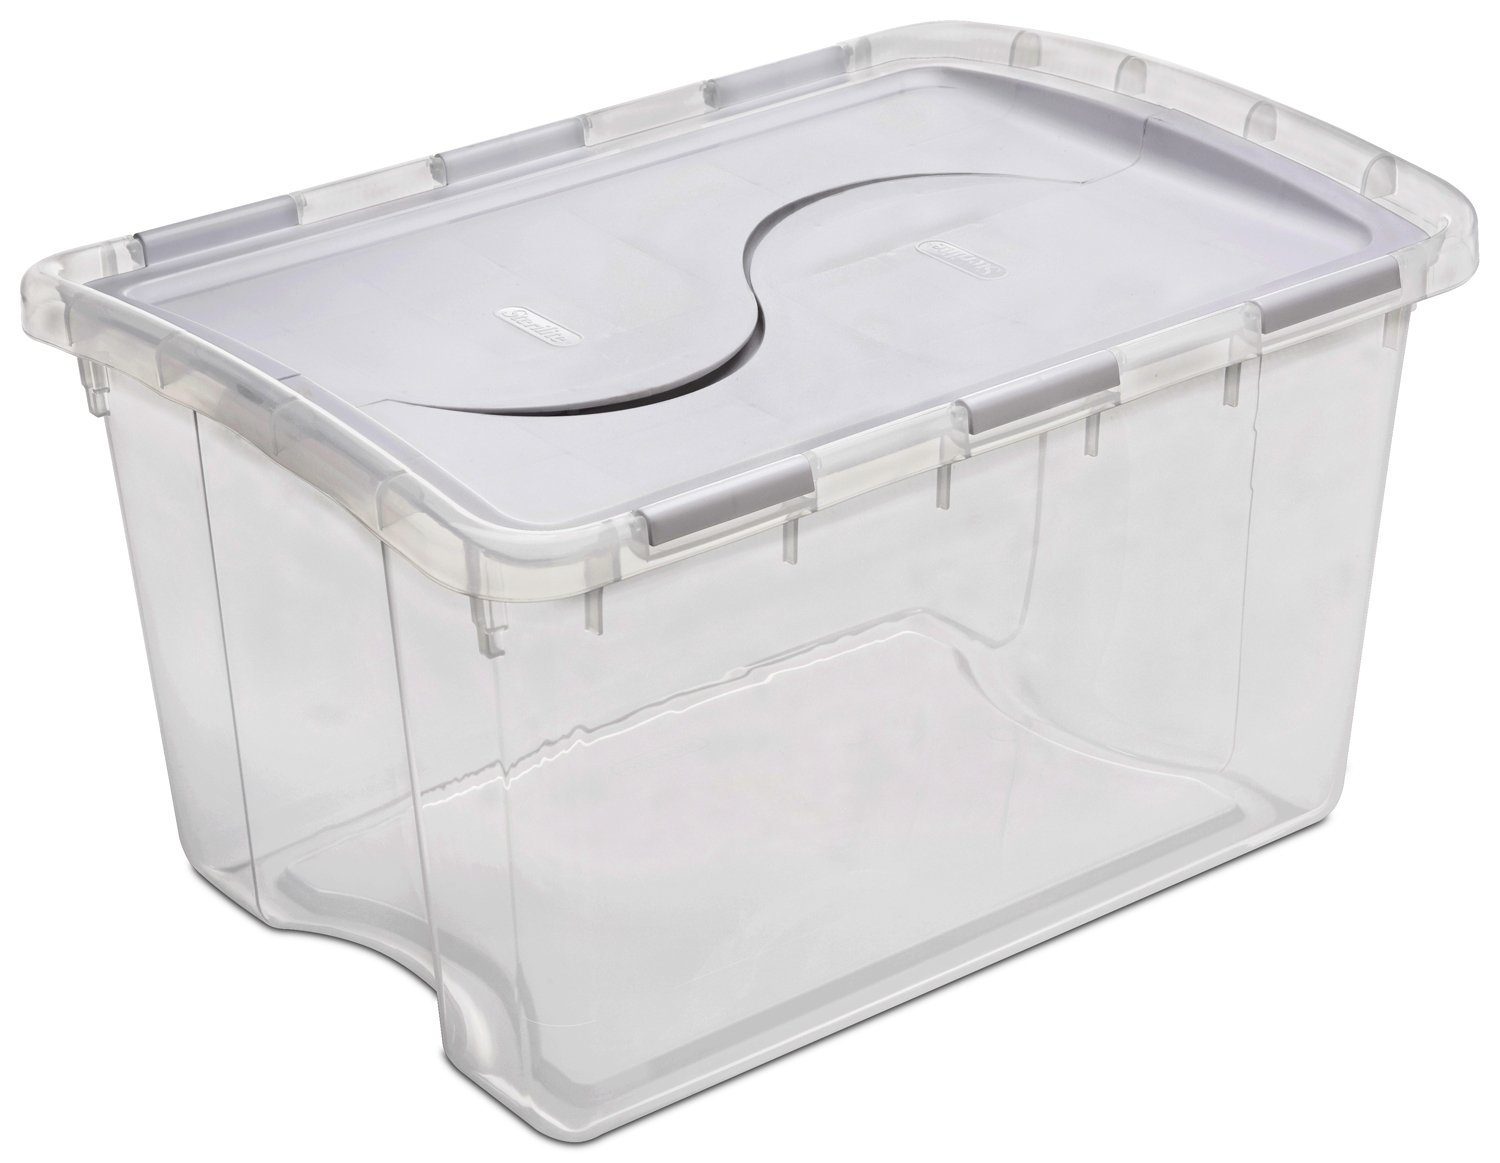 Attirant Amazon.com: Sterilite 19148006 48QT Hinged Lid Store Box: Home Improvement